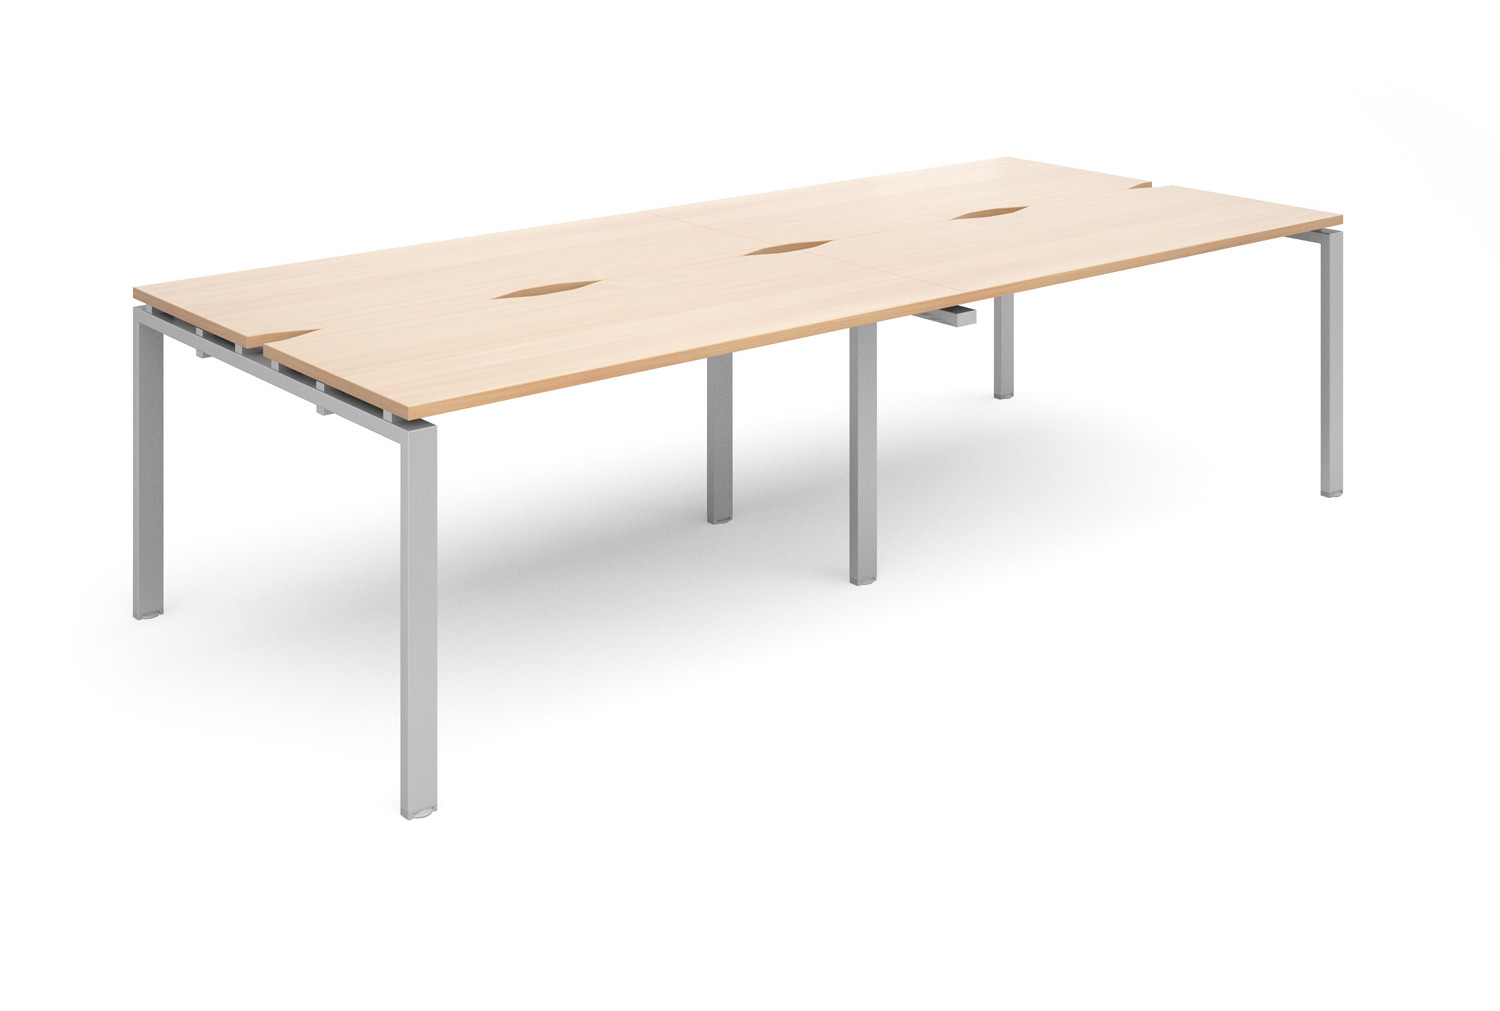 Prime Back To Back Double Narrow Bench Desk (Silver Legs)